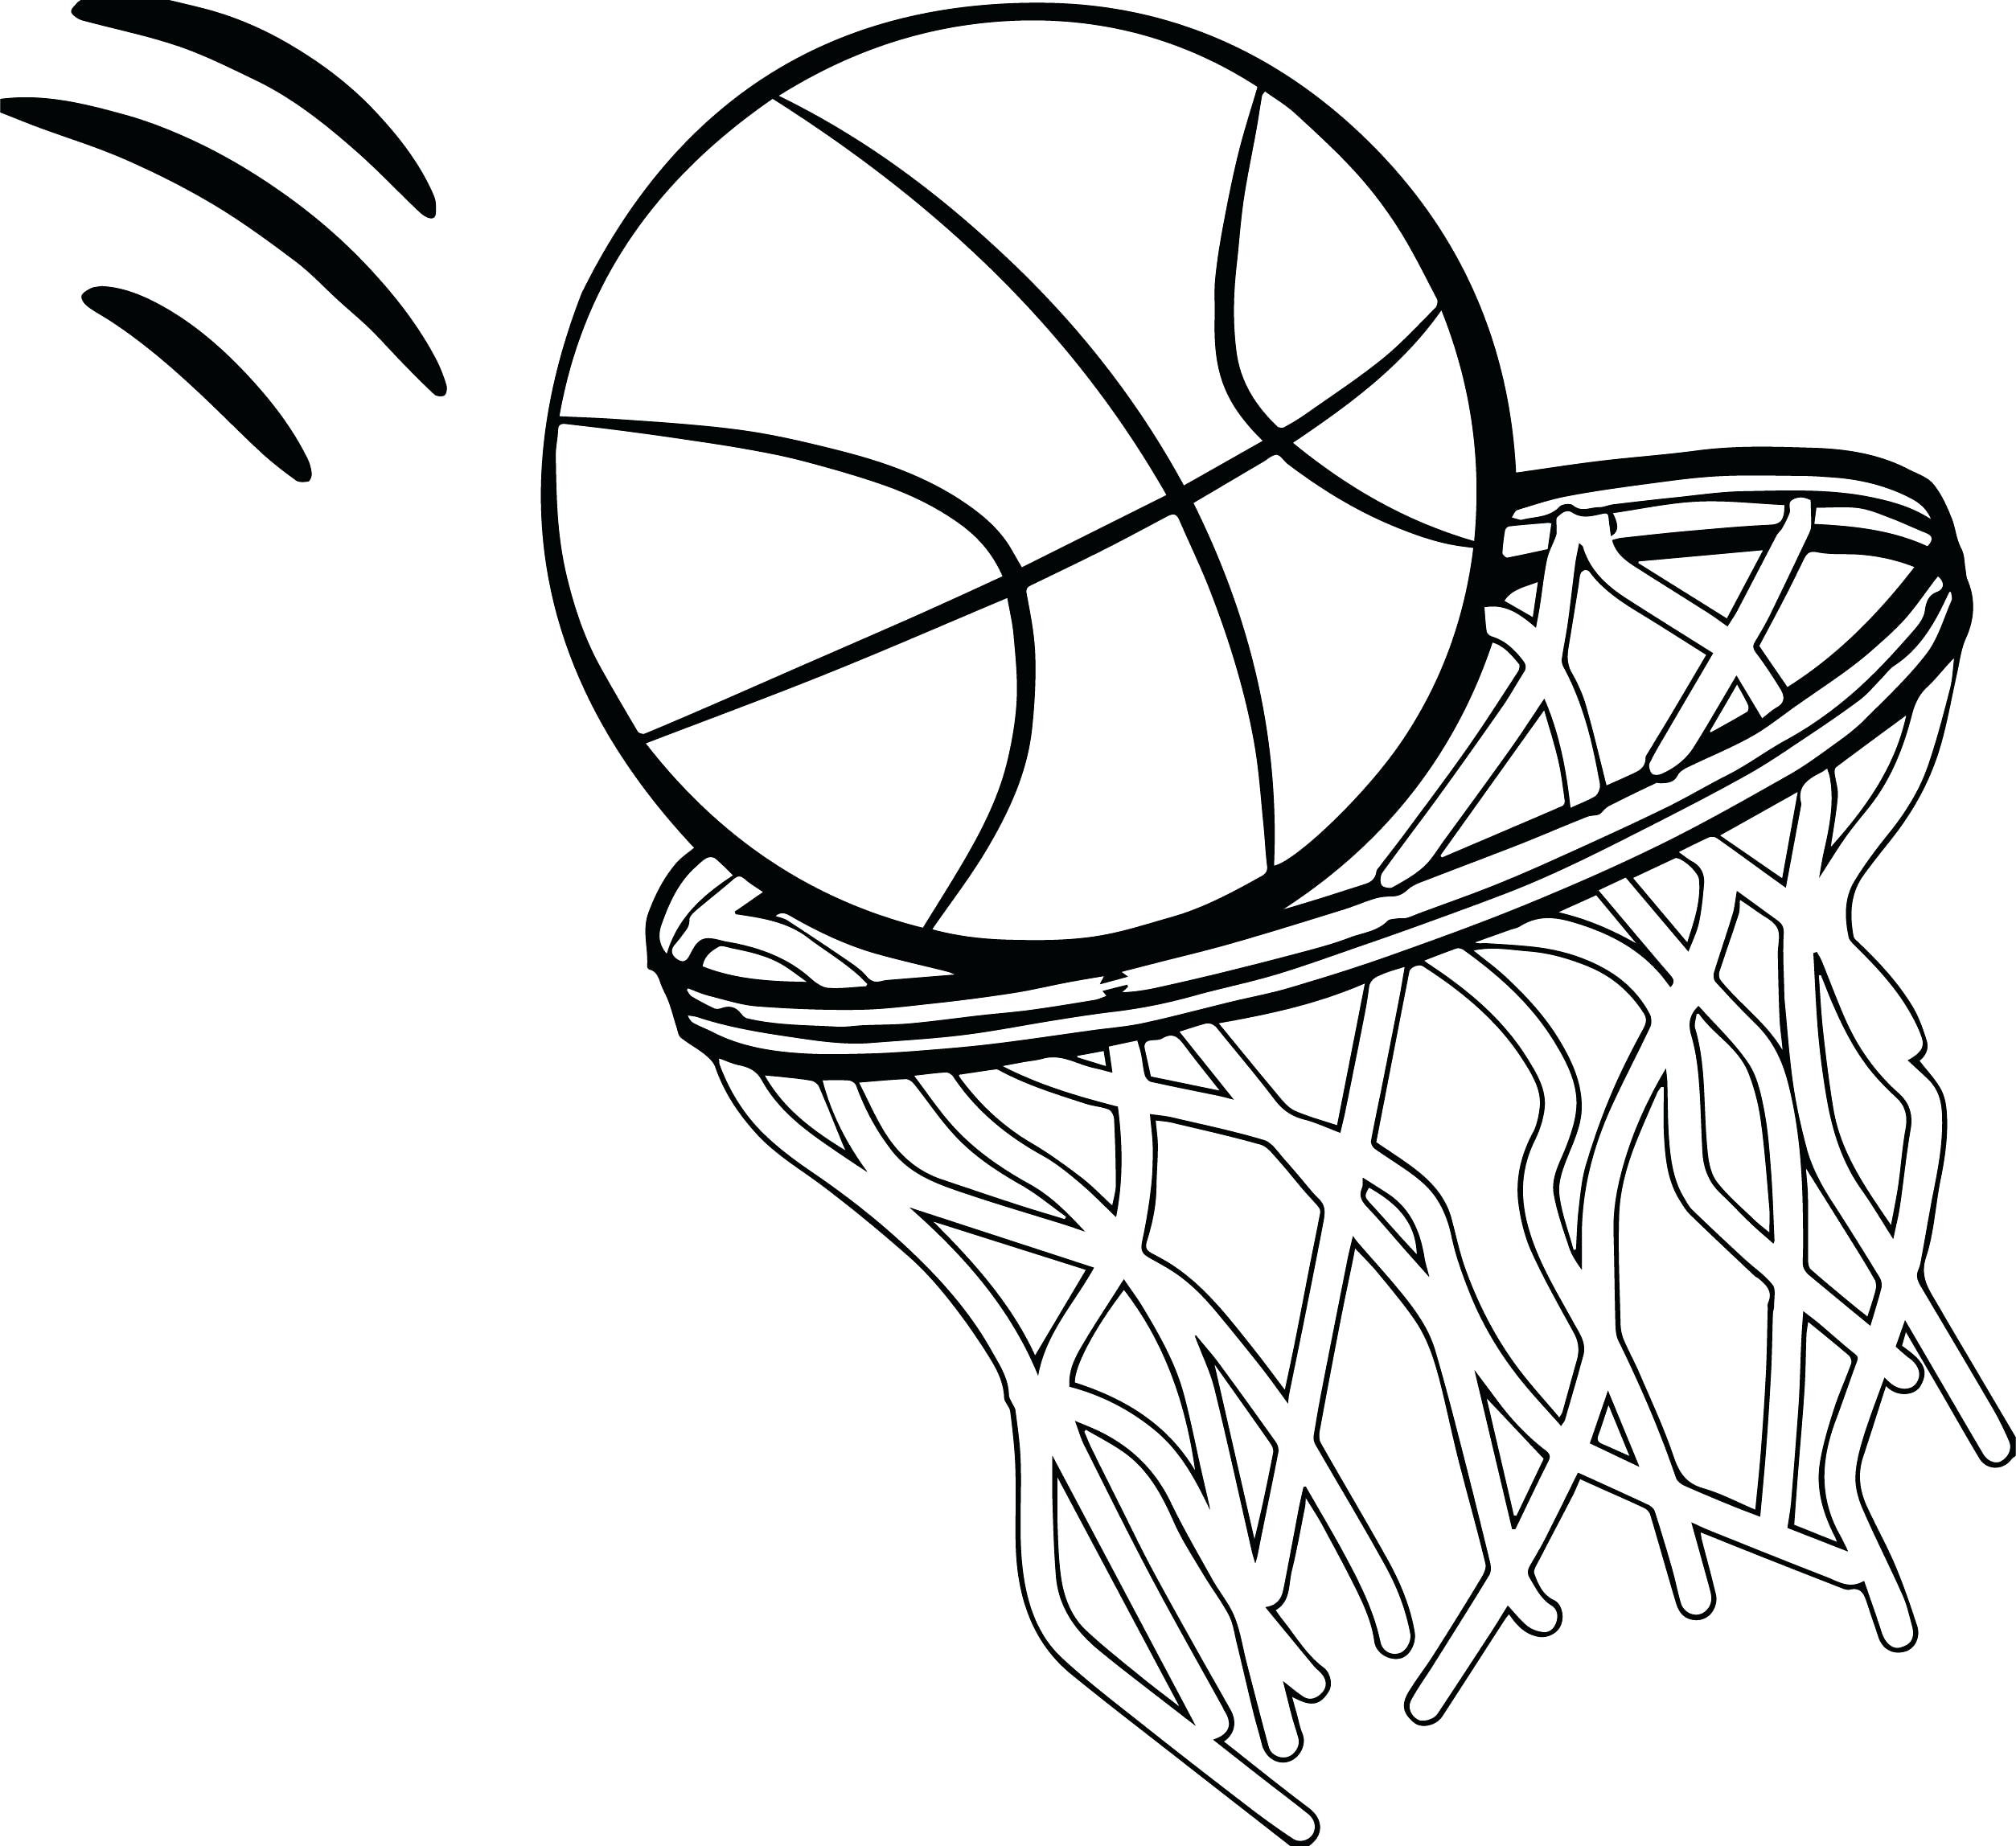 2507x2296 Basketball Hoop Coloring Pages